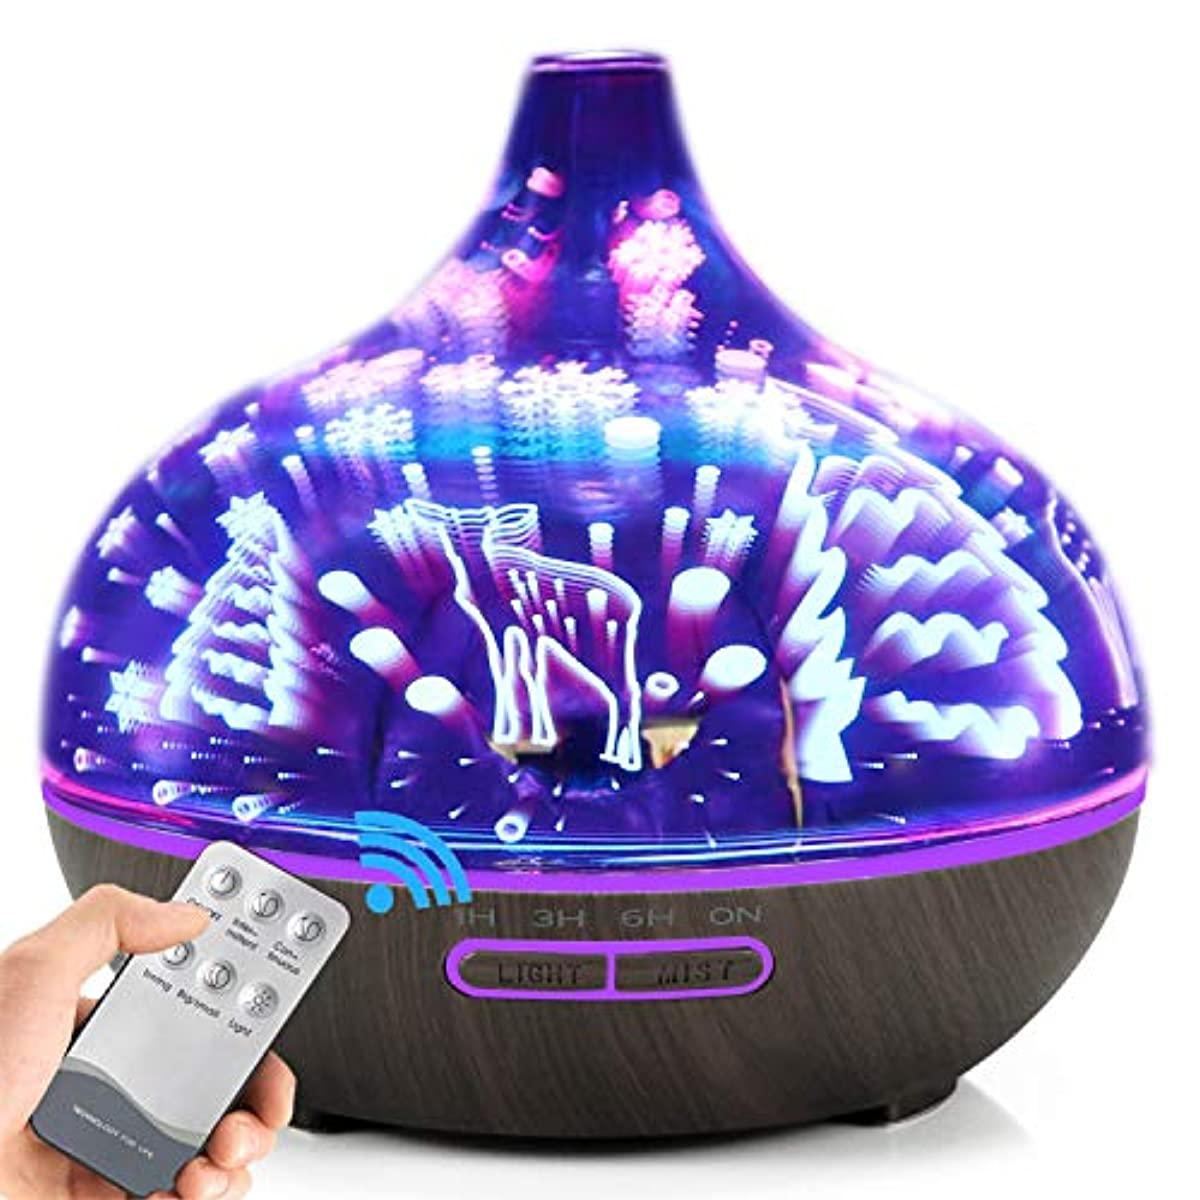 スクラブタックル発音するAXNYLHY Essential Oil Diffuser,400ml Aroma Diffuser 3D Colorful LED Night Light Glass humidifiers for Bedroom,...